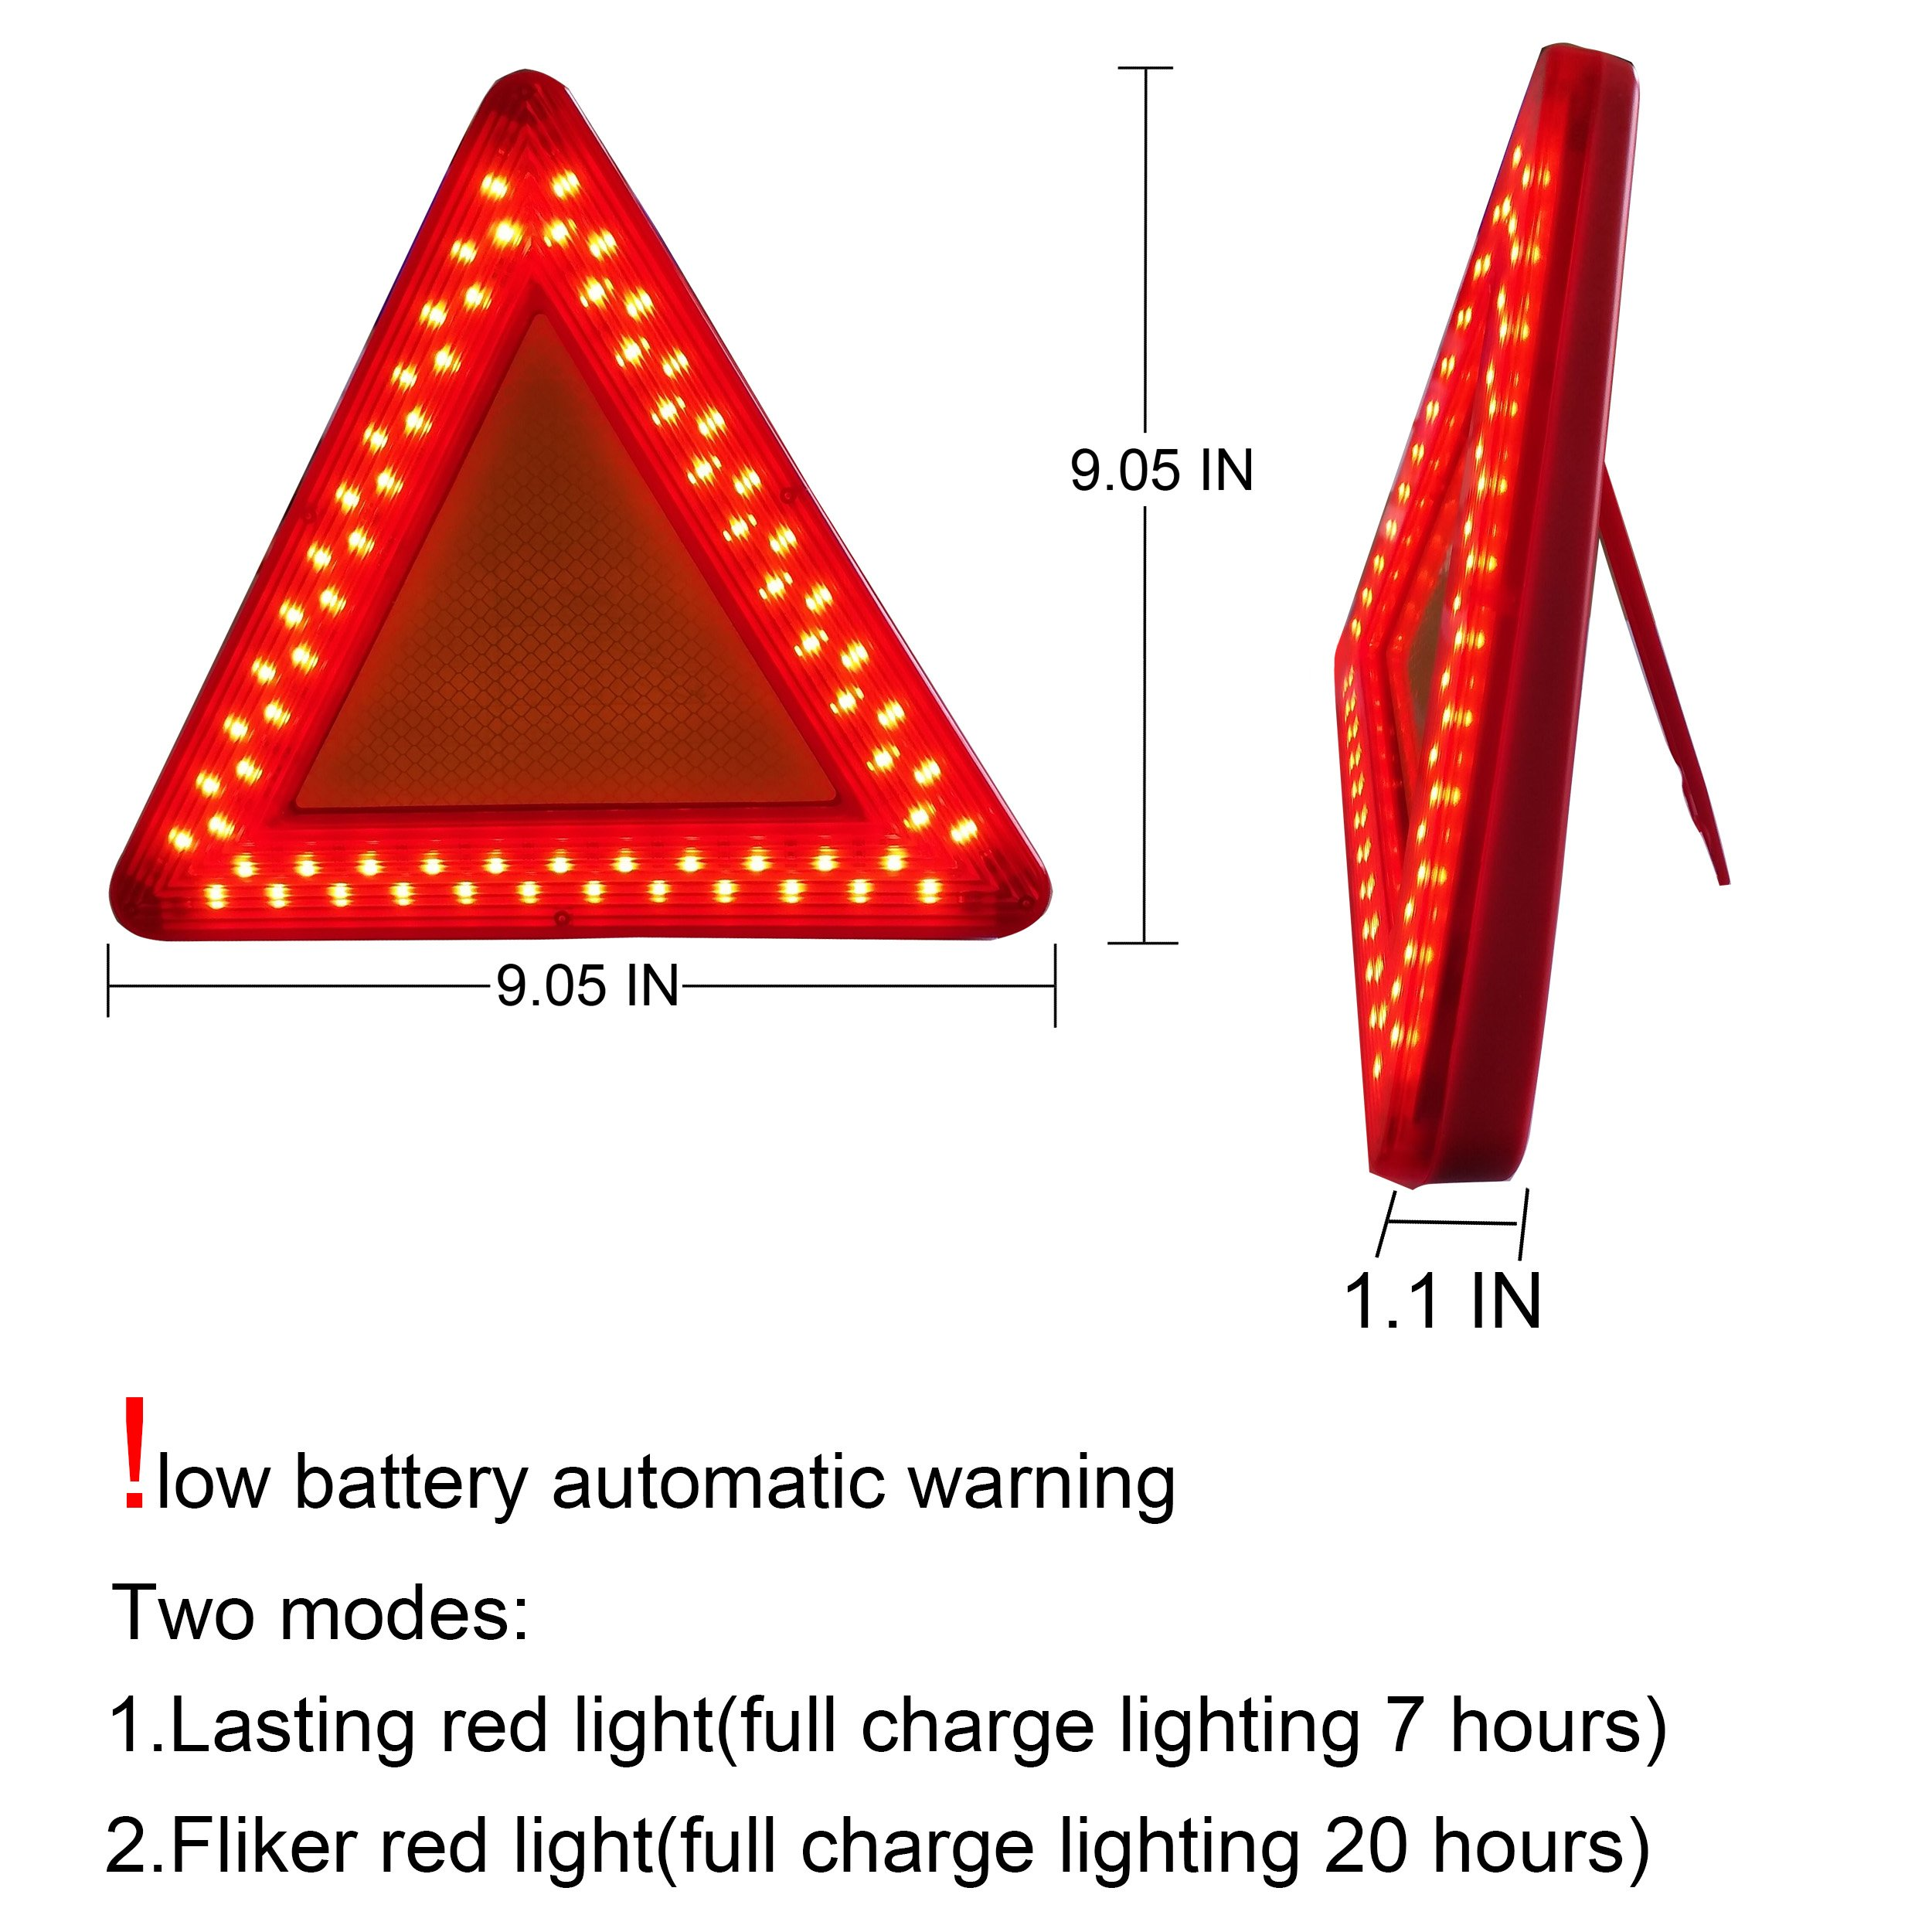 WELLHOME Red Safety Warning Triangular Reflective Kit Triangle Reflector Safety Sign for Car Truck Van Trailers Caravans Lorry Bus etc,9.05 Inch Two Modes - 2 Pack by WELLHOME (Image #1)